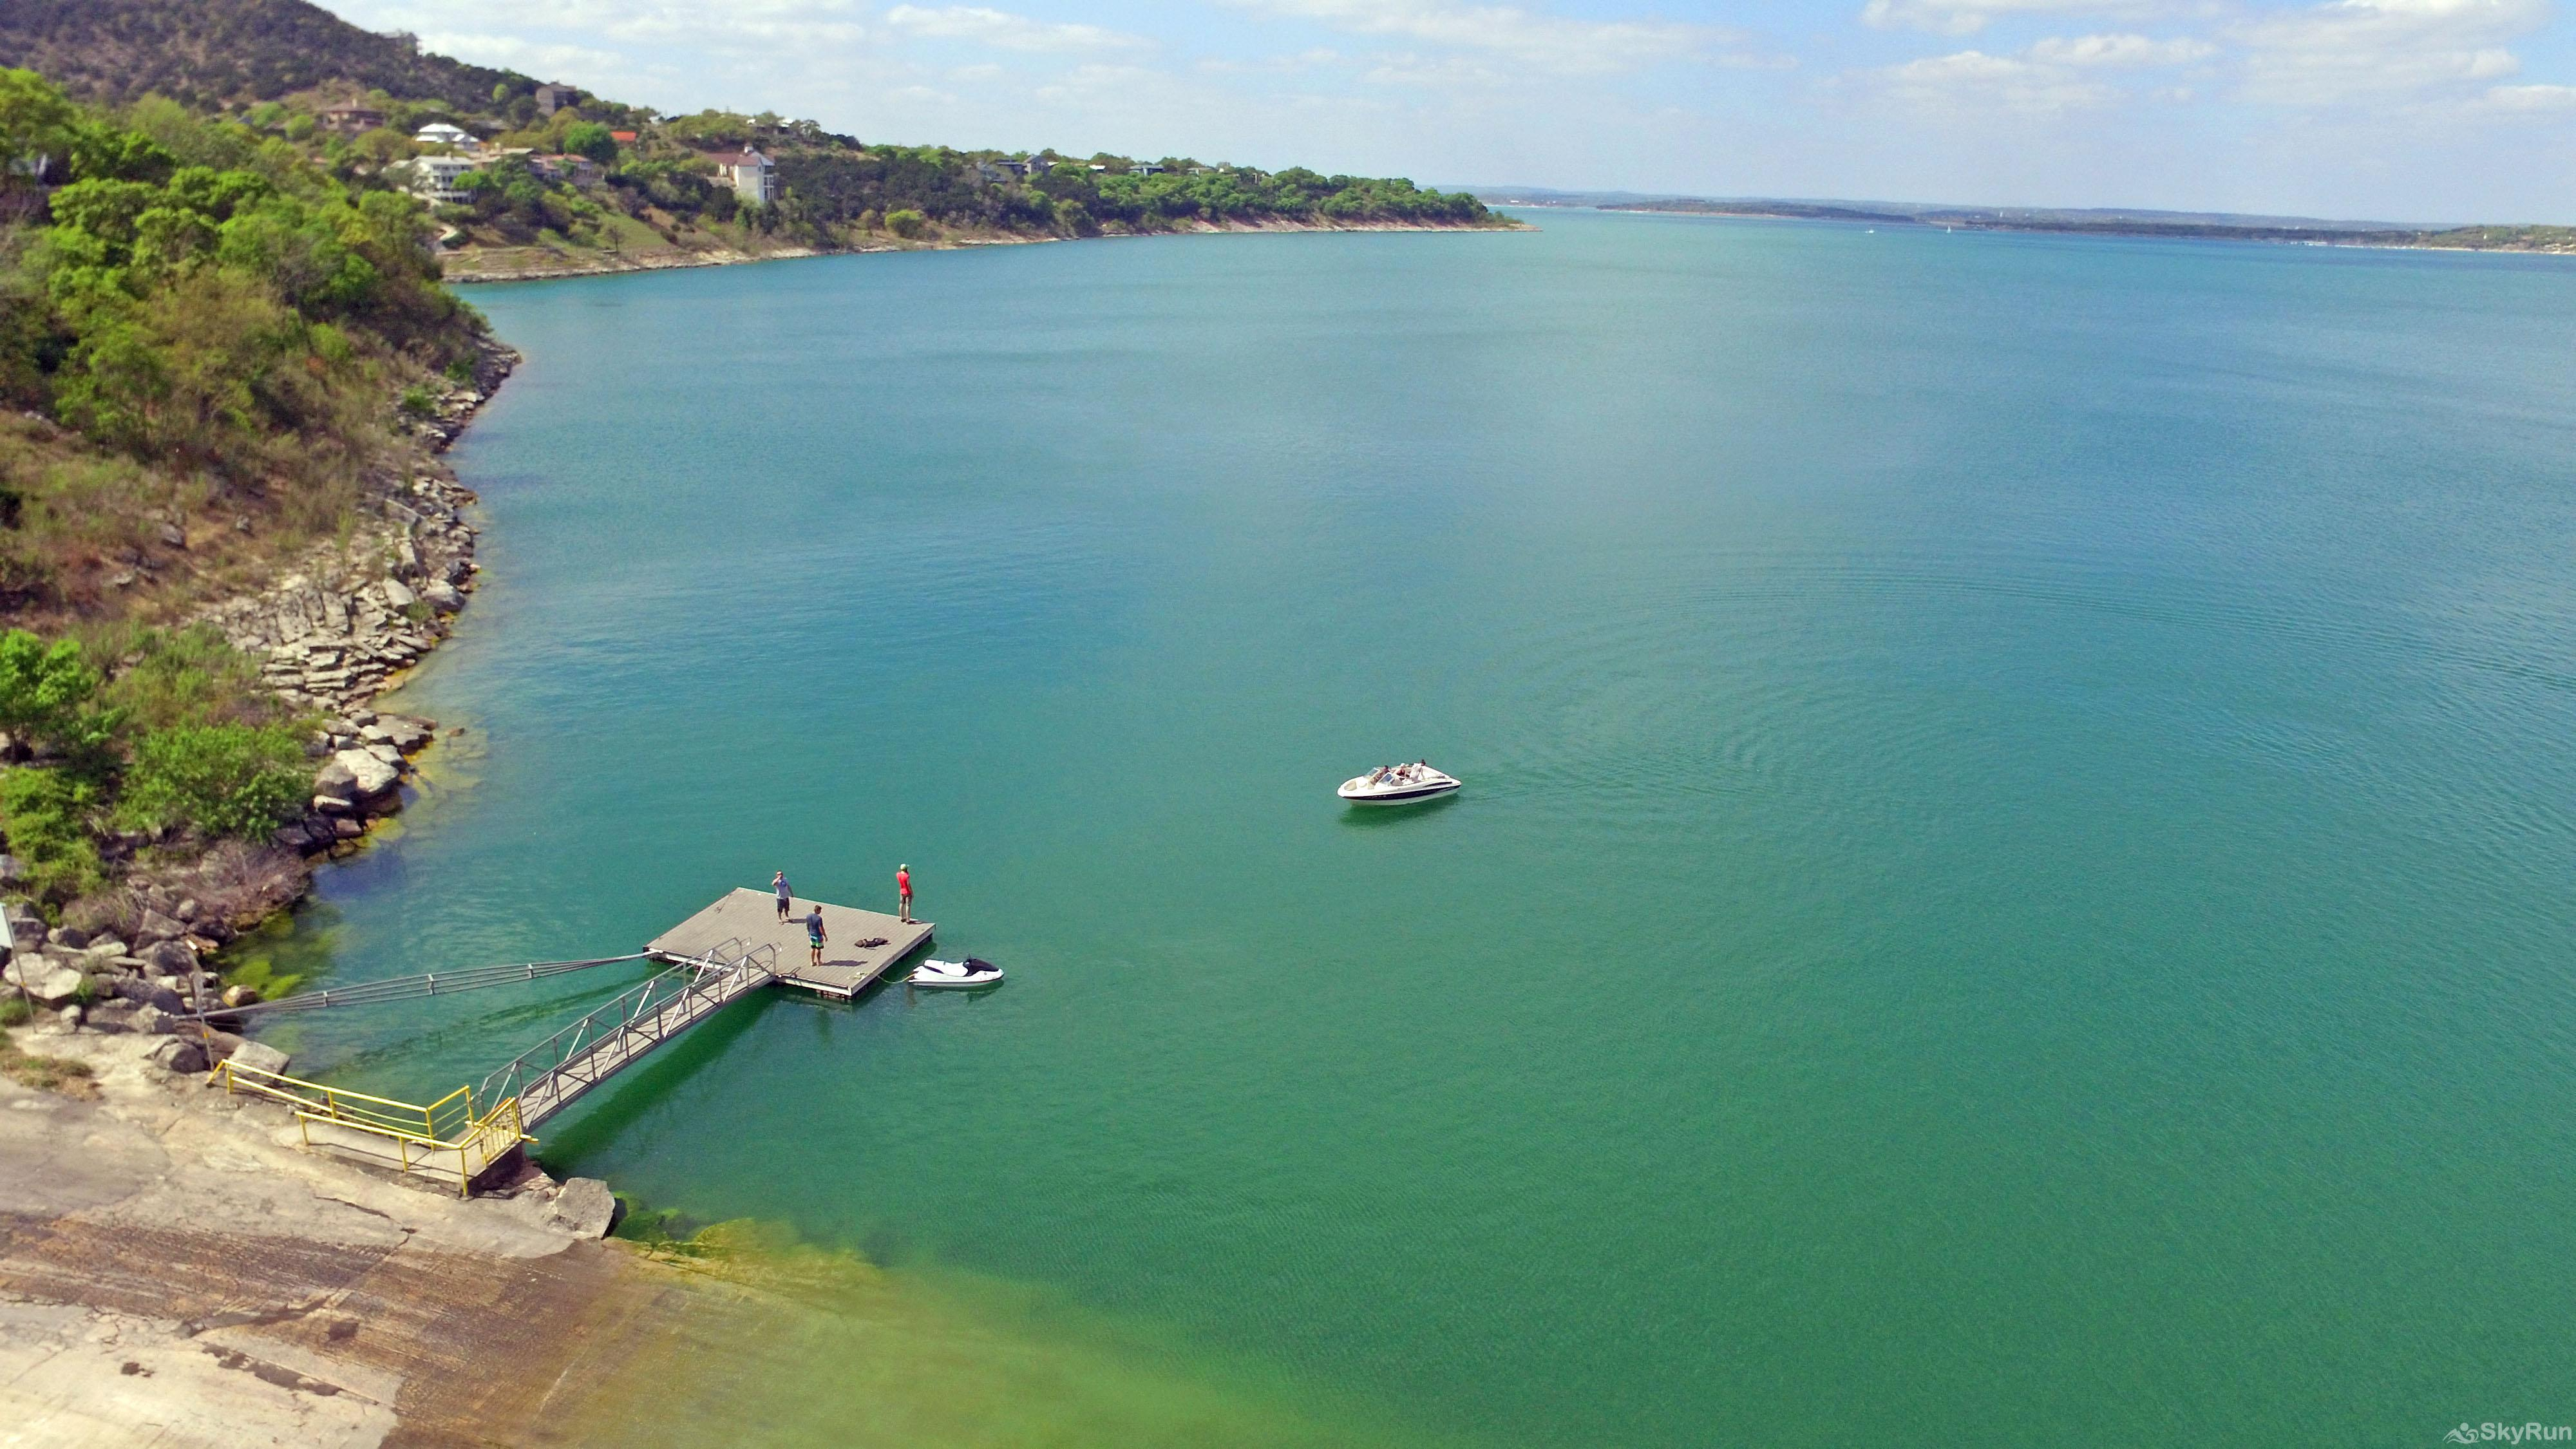 LAKESIDE HAVEN Numerous Free, Public Boat Ramps around Canyon Lake